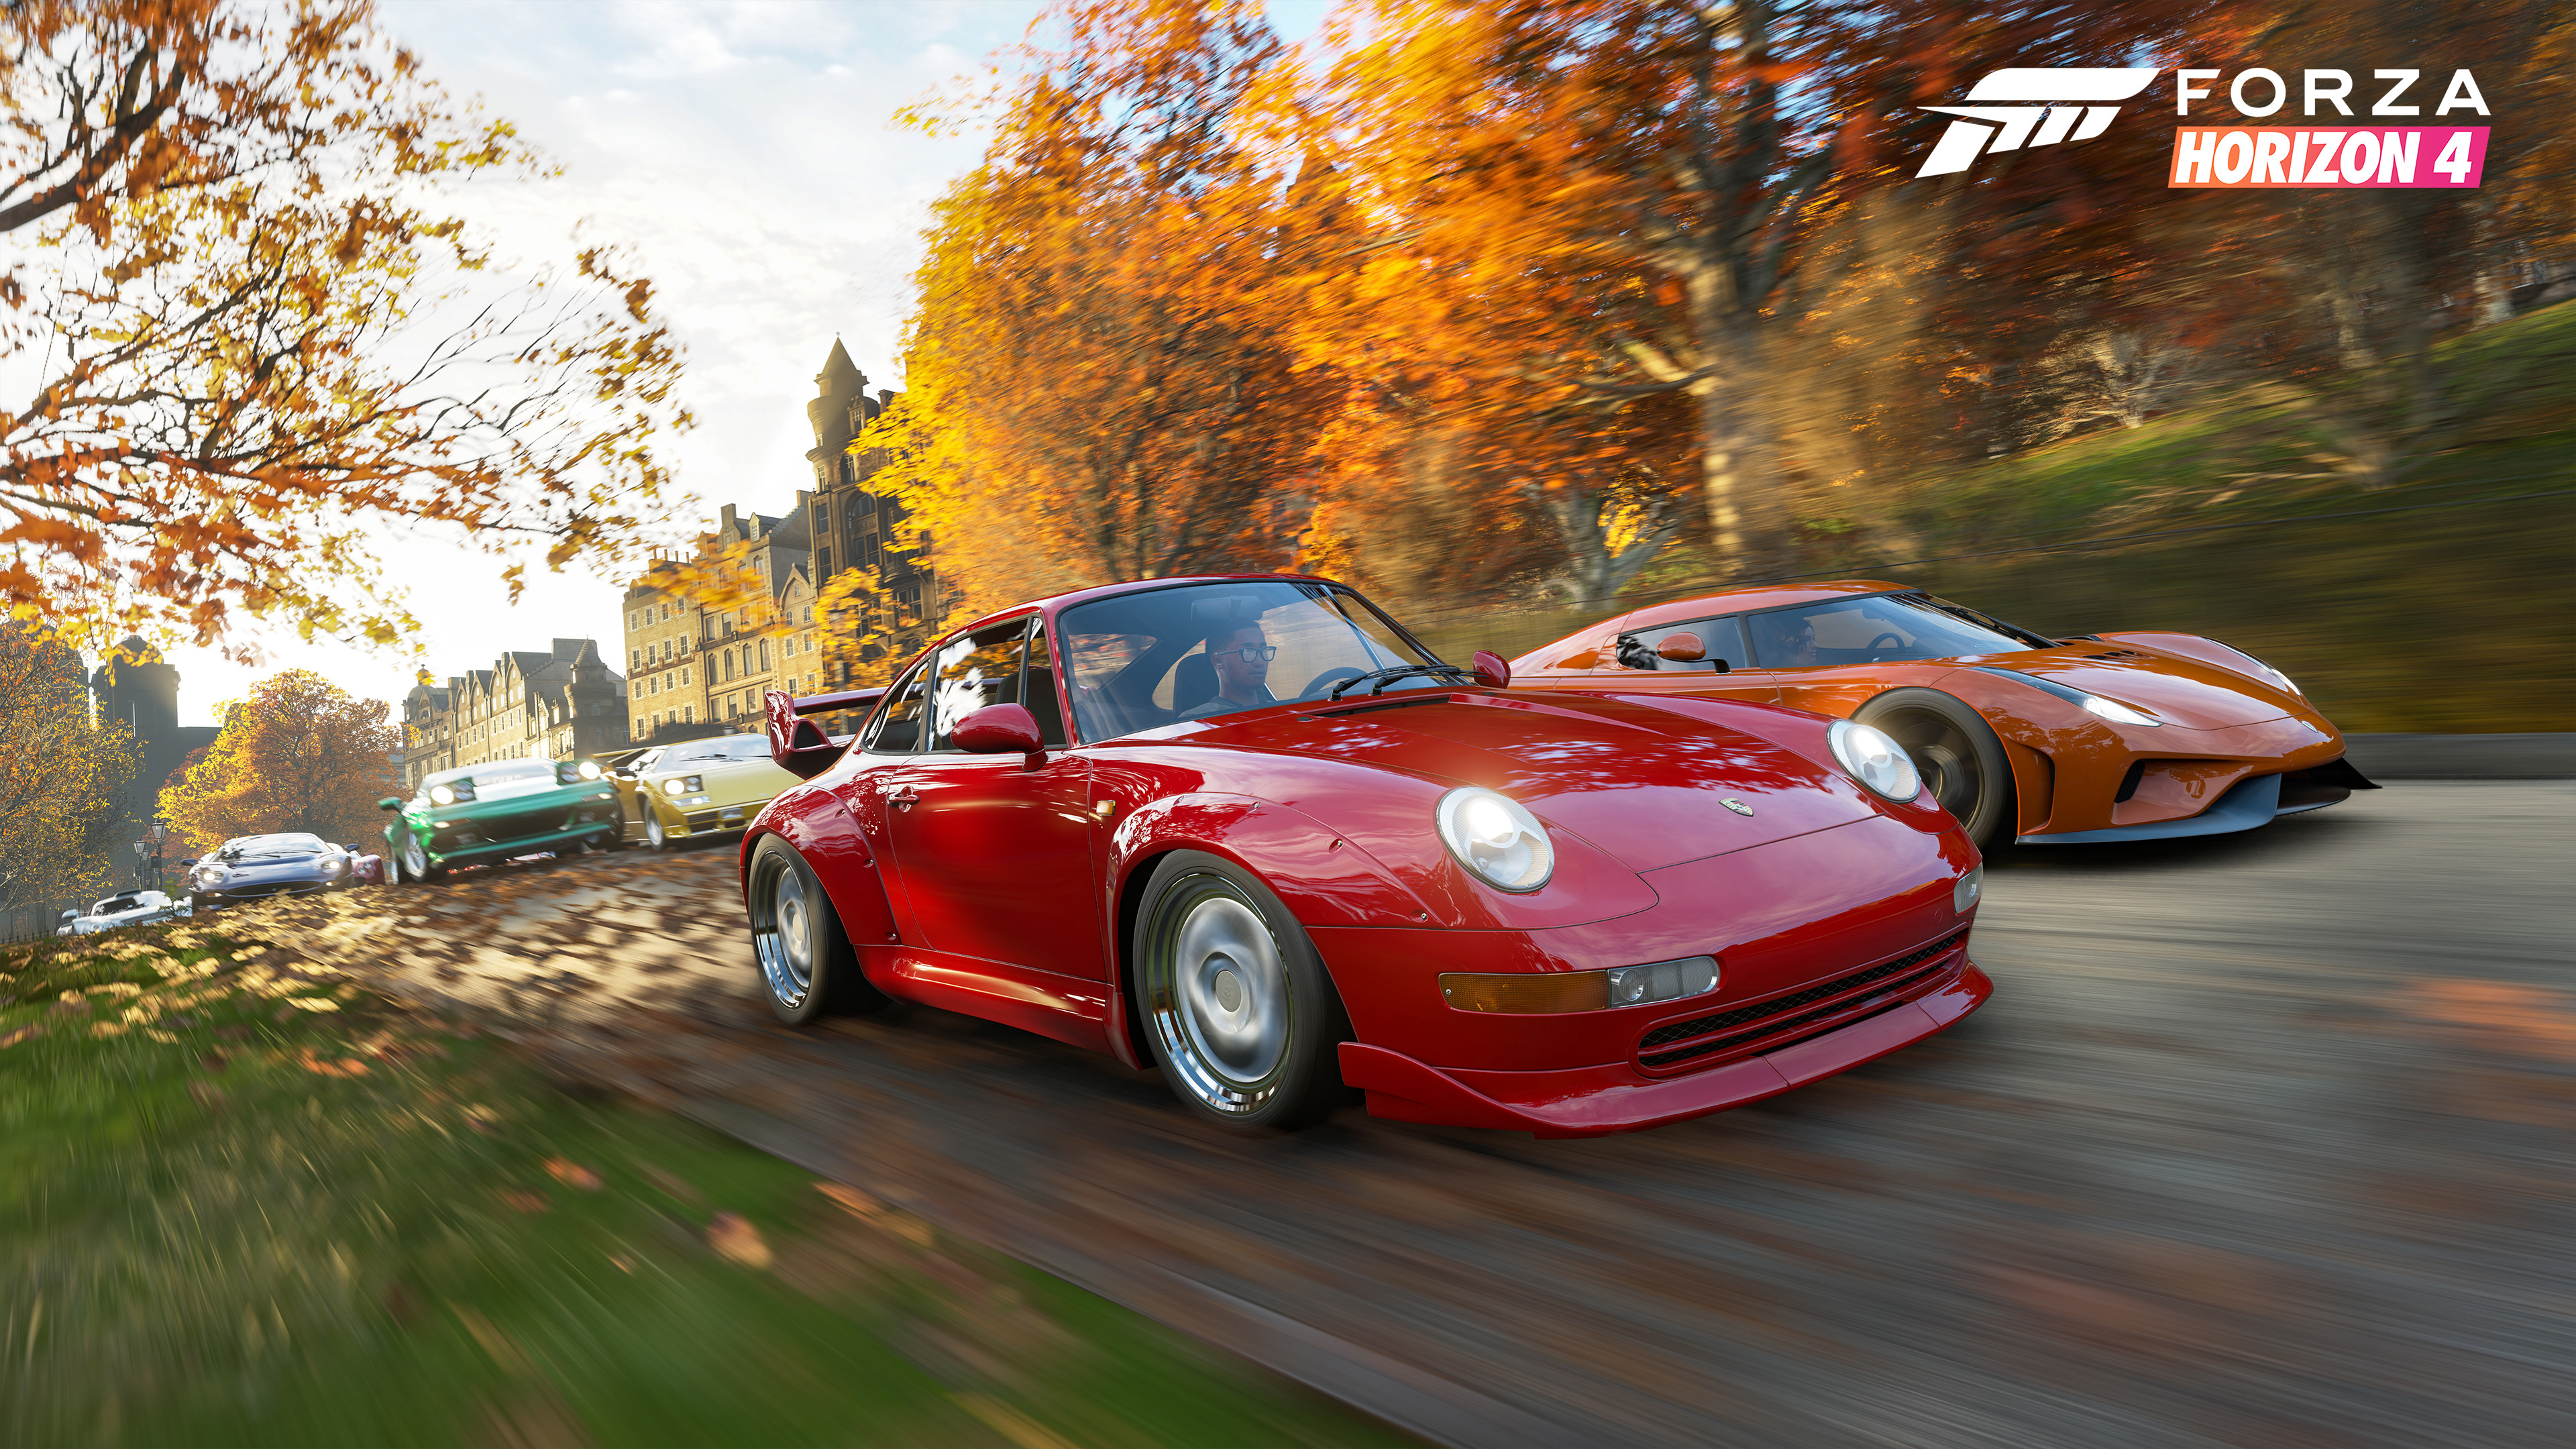 Forza Horizon 4 4k Hd Games 4k Wallpapers Images